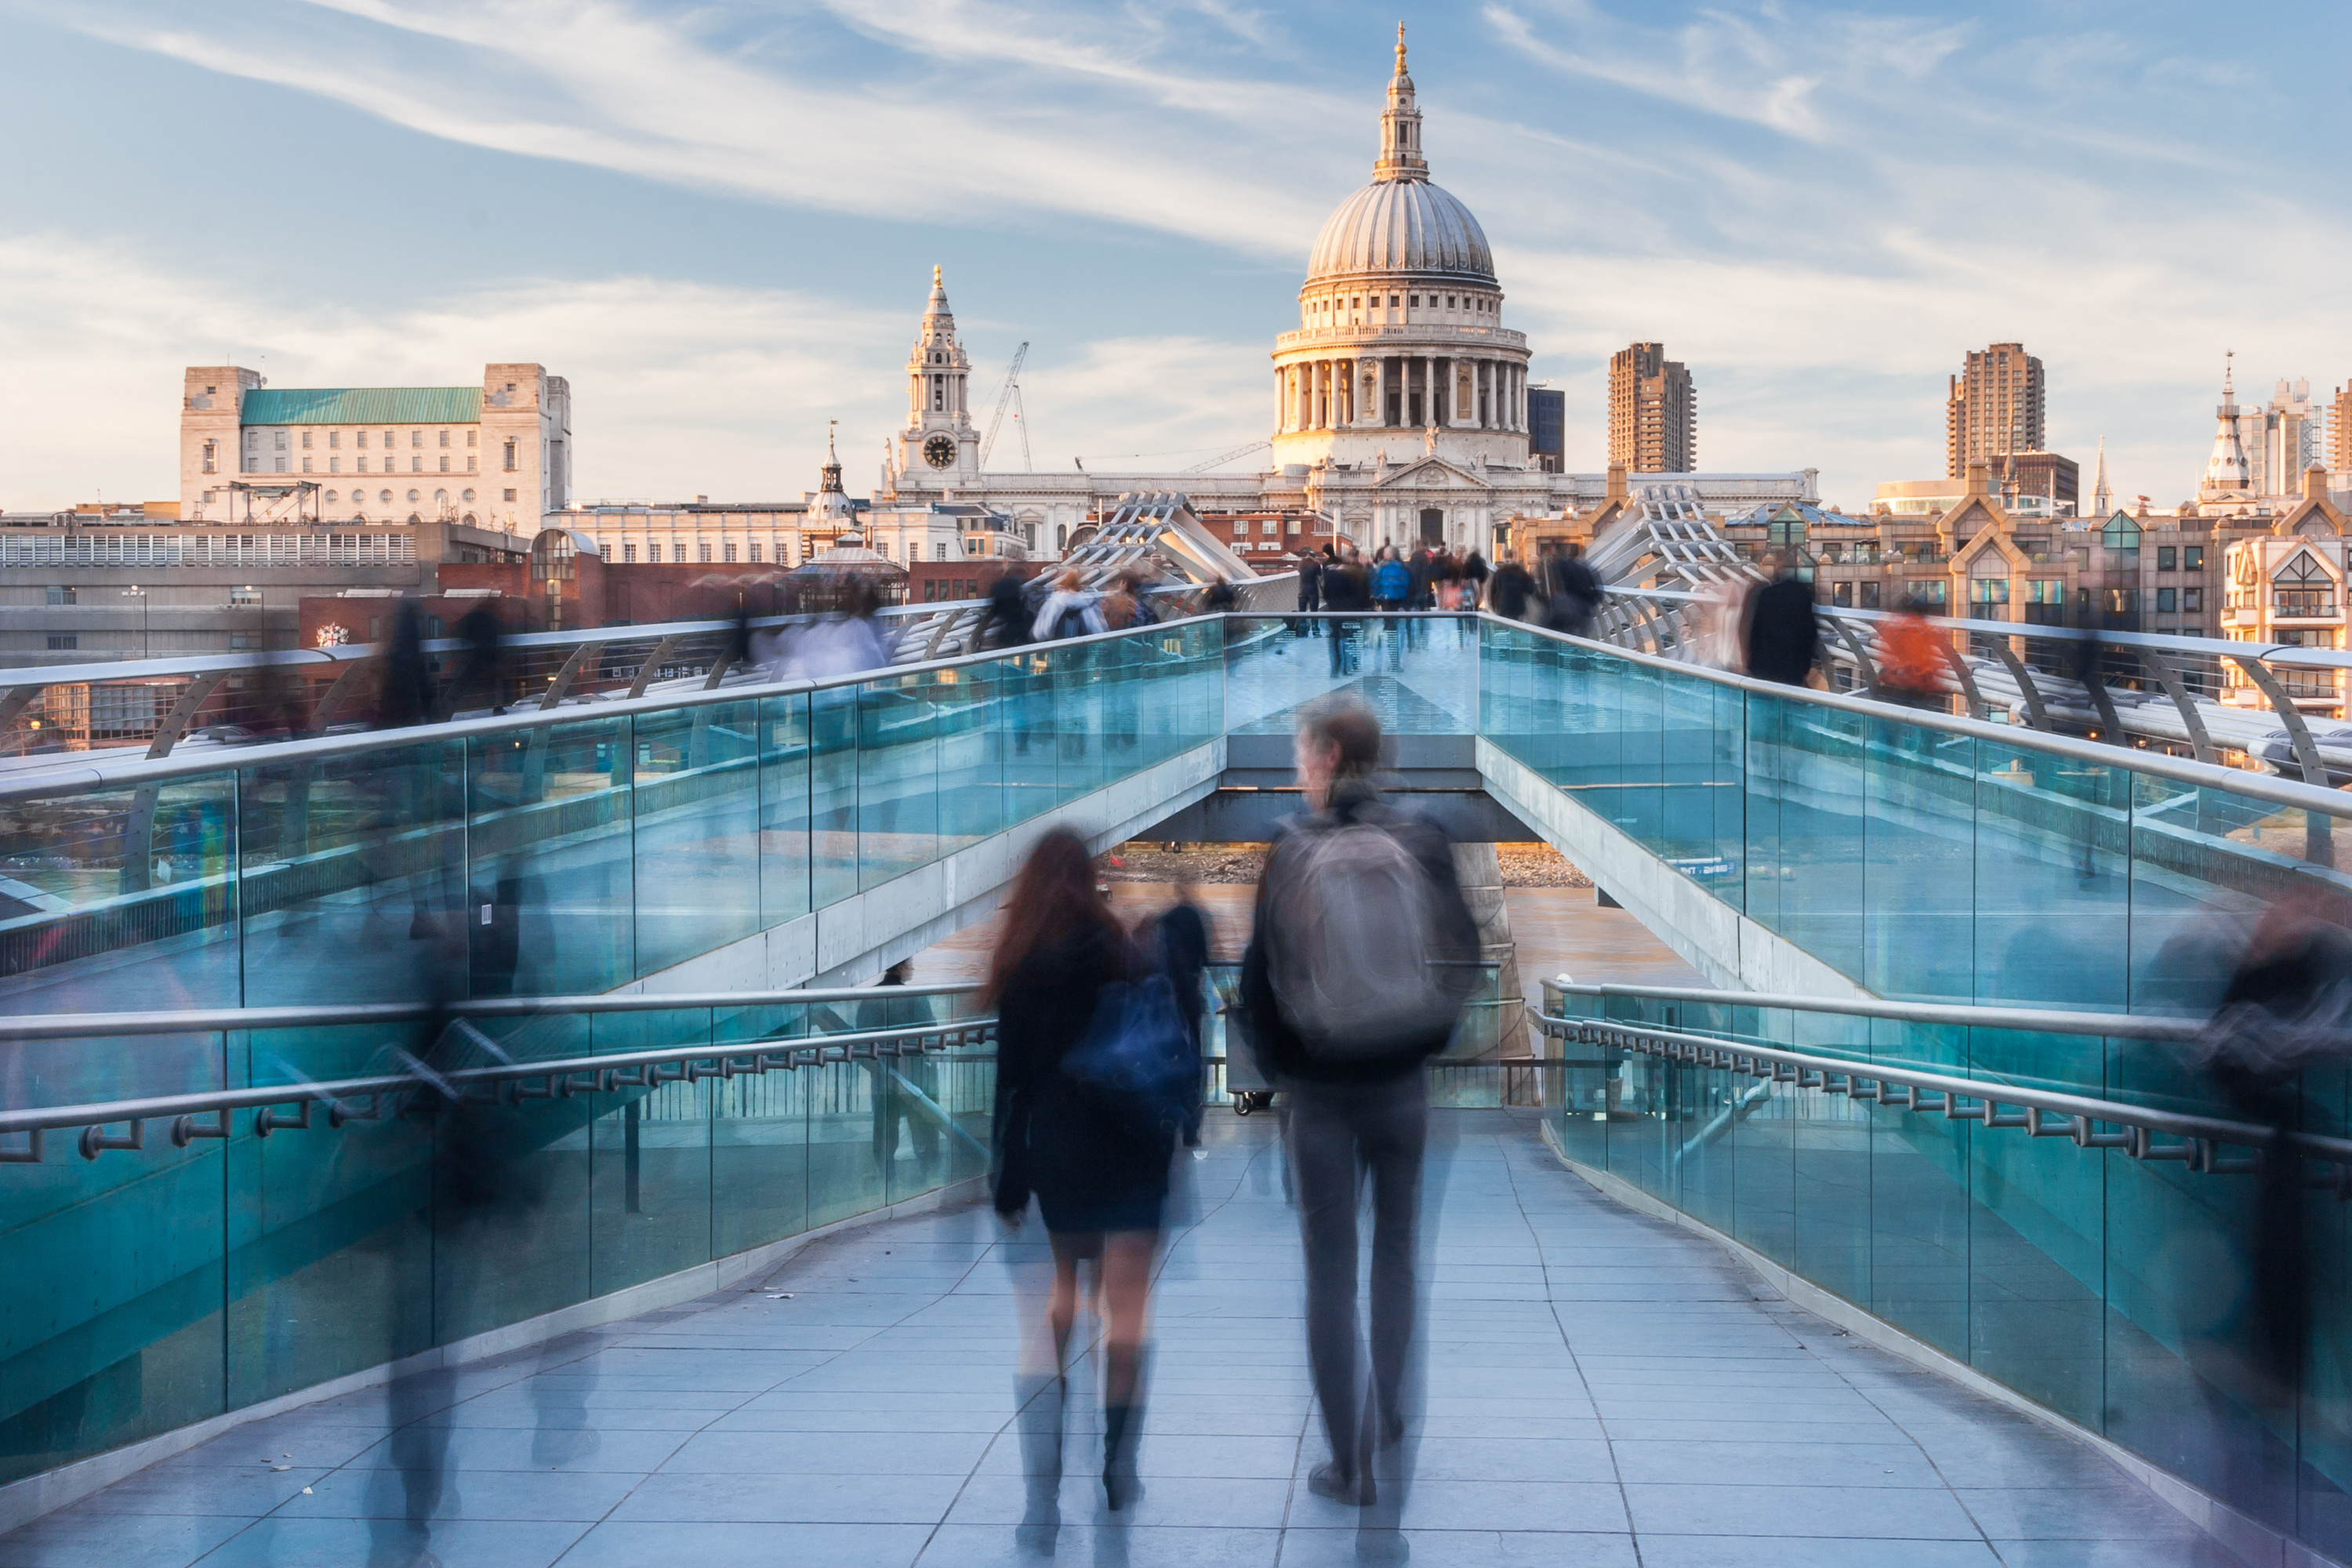 How has Brexit affected the UK tourism industry?